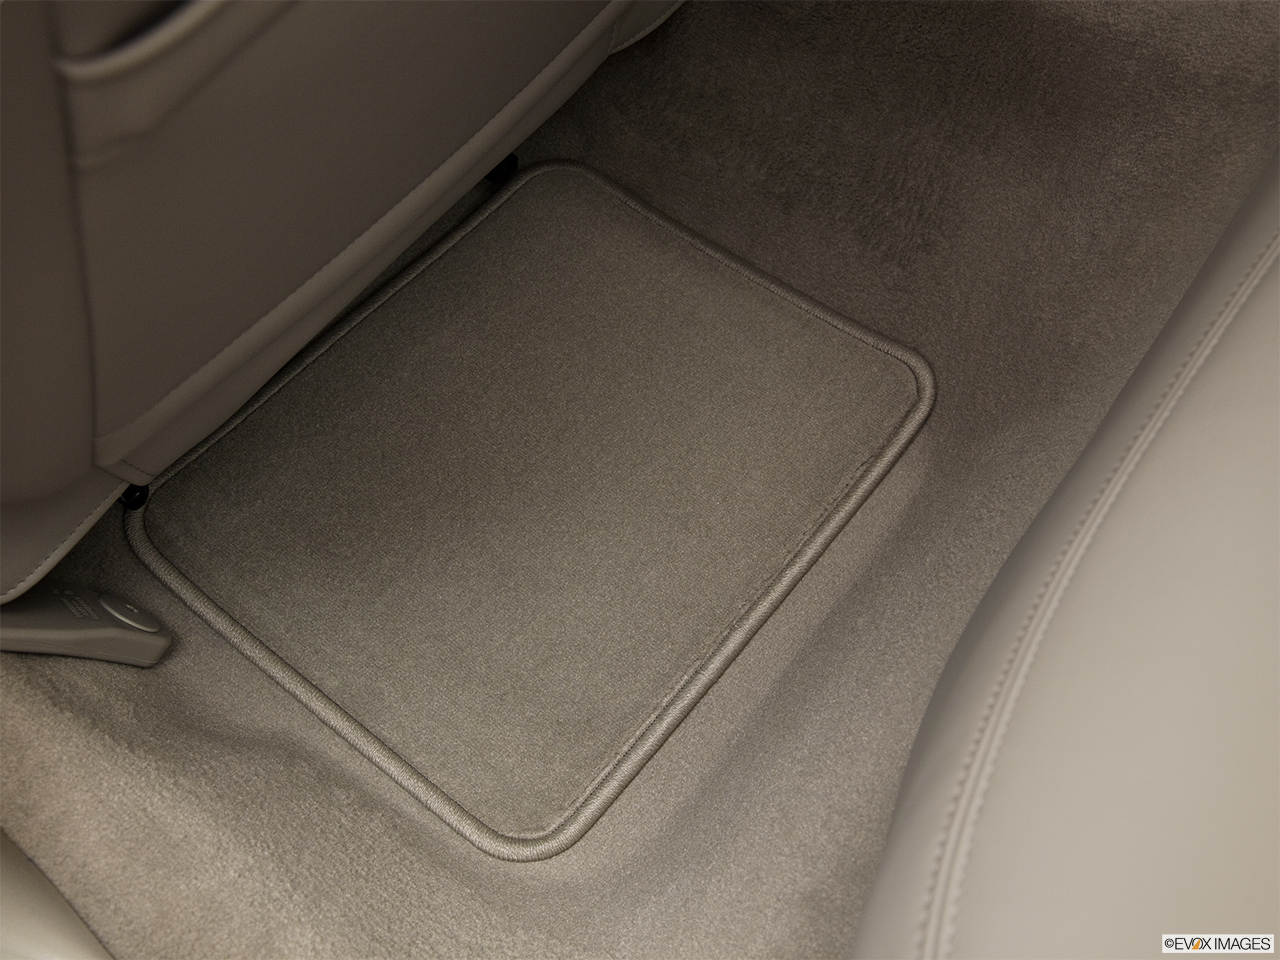 2011 Lincoln Town Car Signature Limited Rear driver's side floor mat. Mid-seat level from outside looking in.